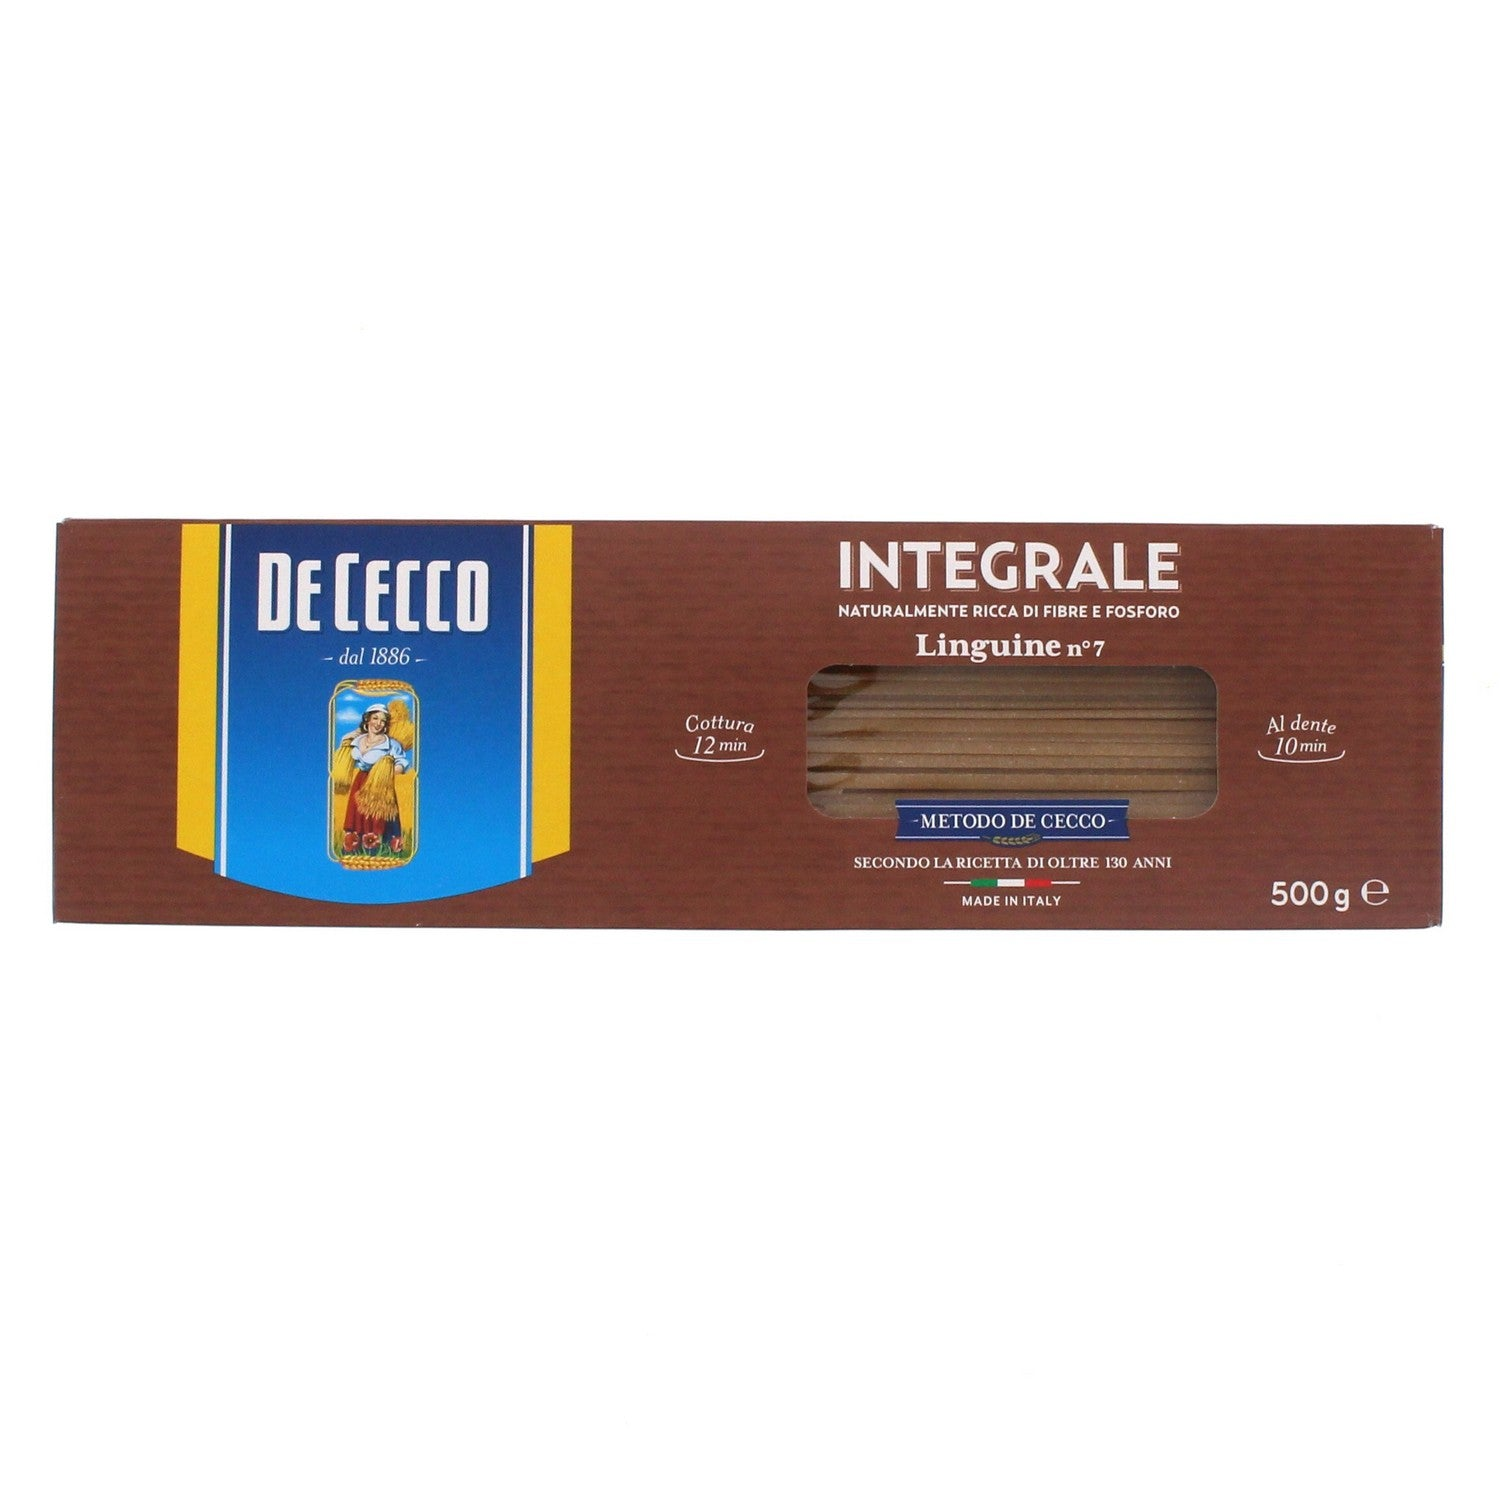 De Cecco Integrale (Whole Wheat) Linguine no 7 500g